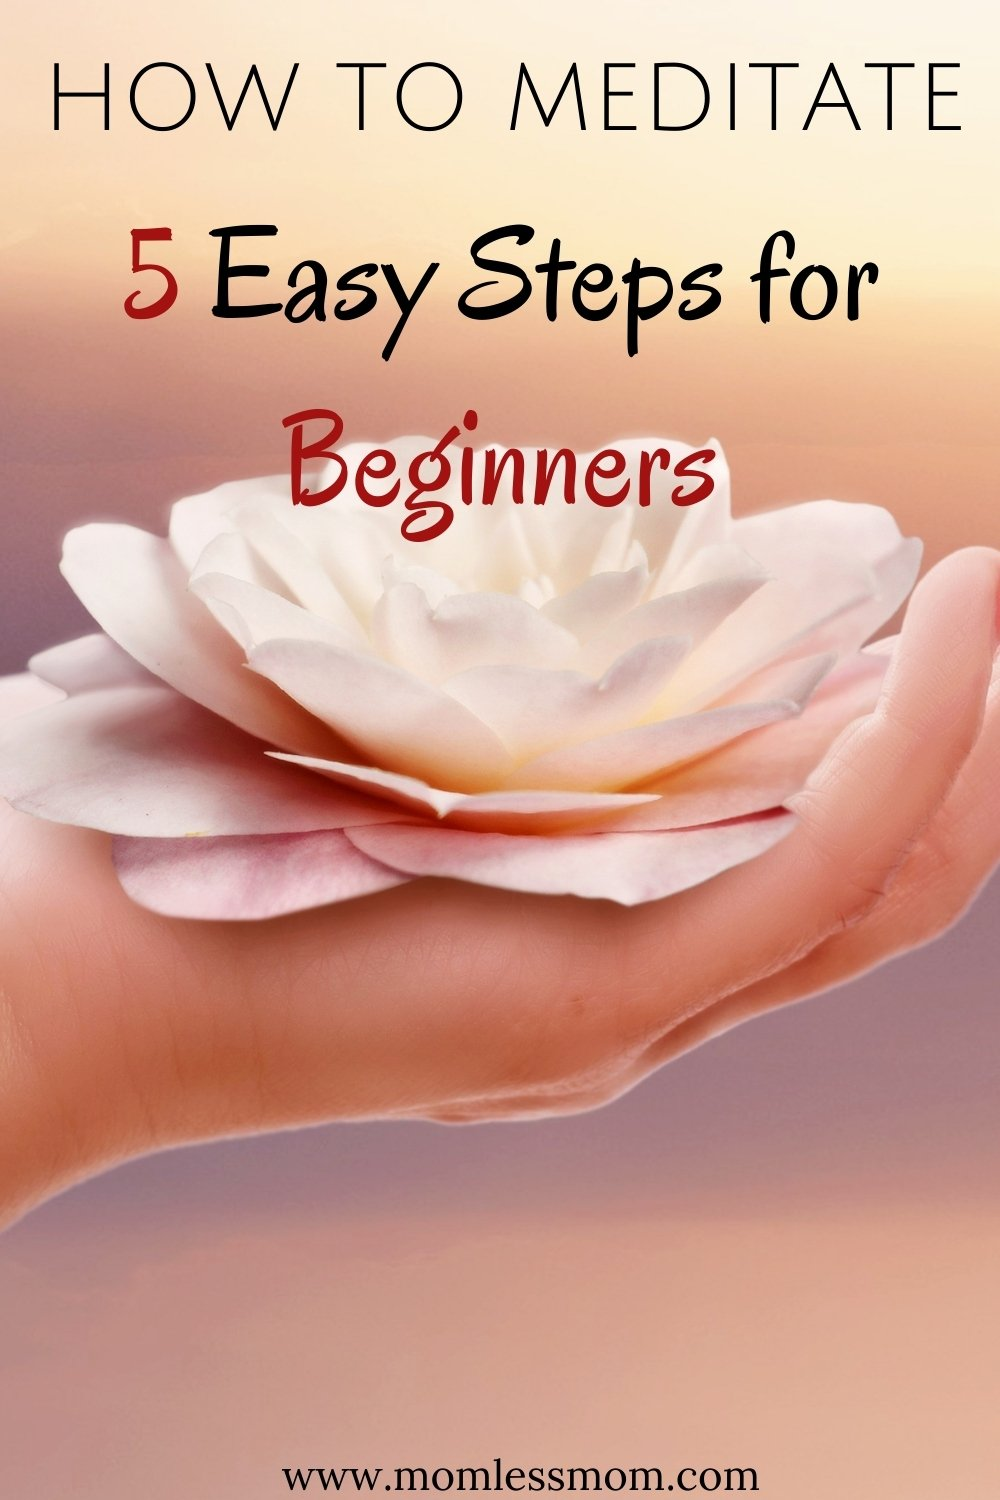 How to do Meditation as a Beginner